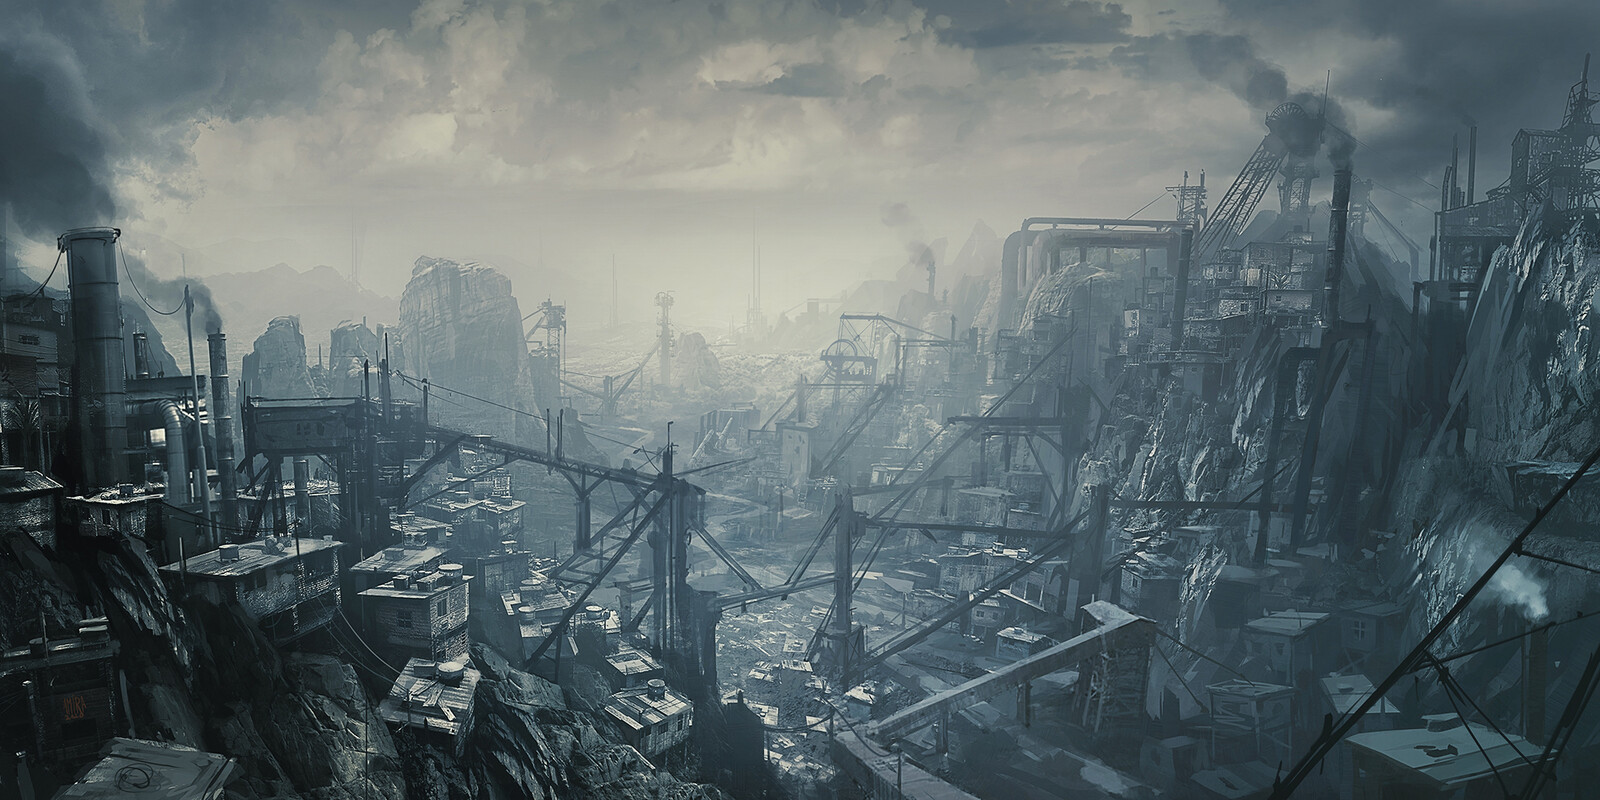 Post-Apocalyptic slums